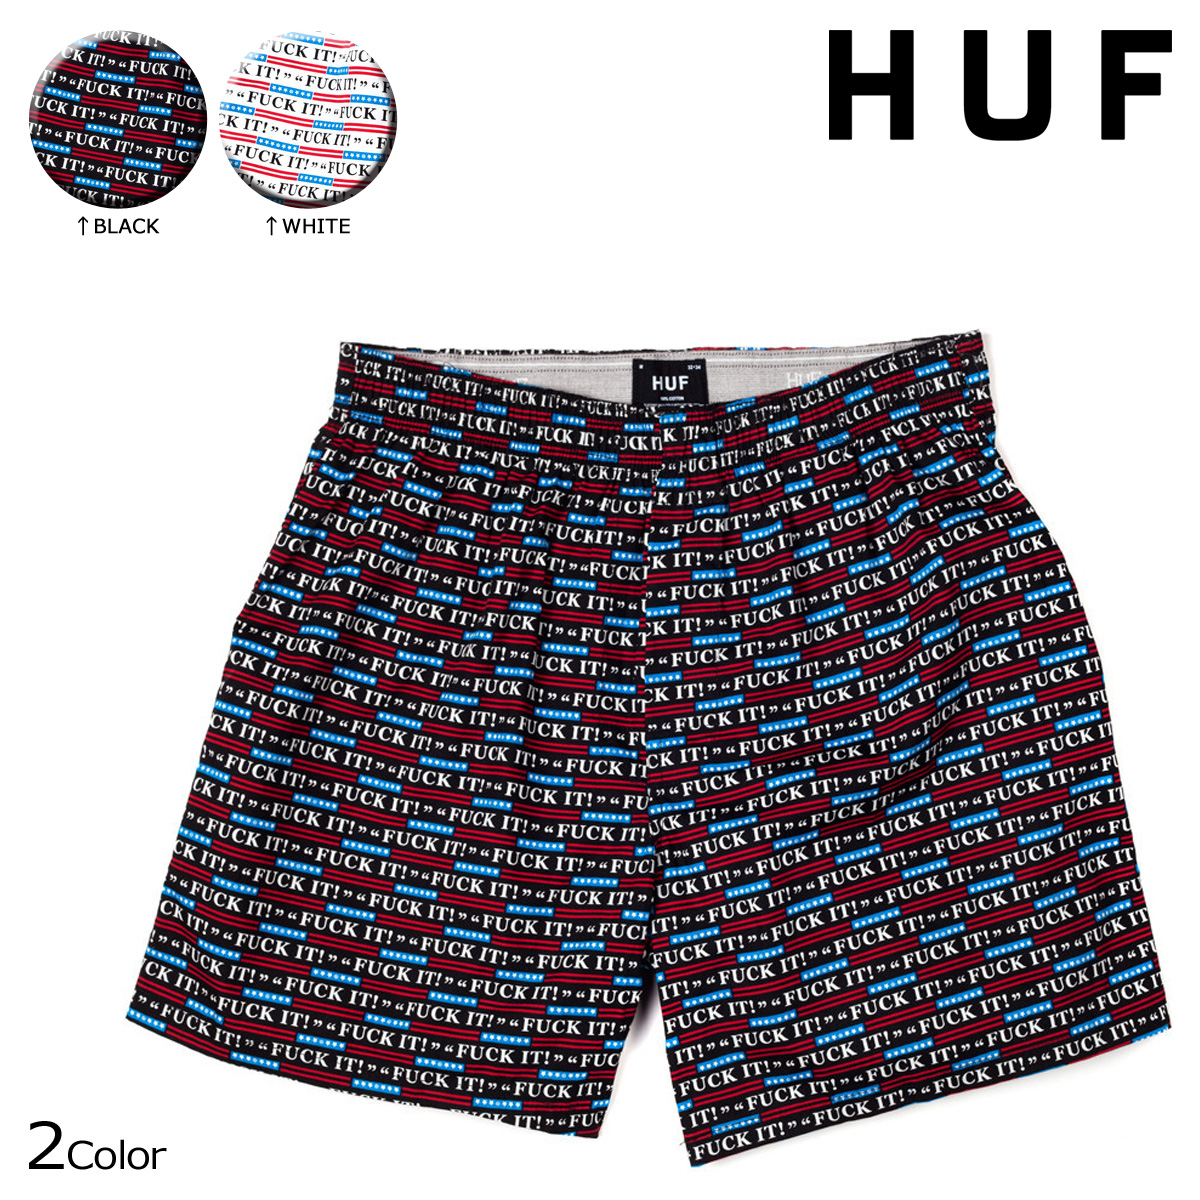 Hough HUF mens Boxer shorts underwear trunks FUCK IT BOXER [8/21 new in stock]